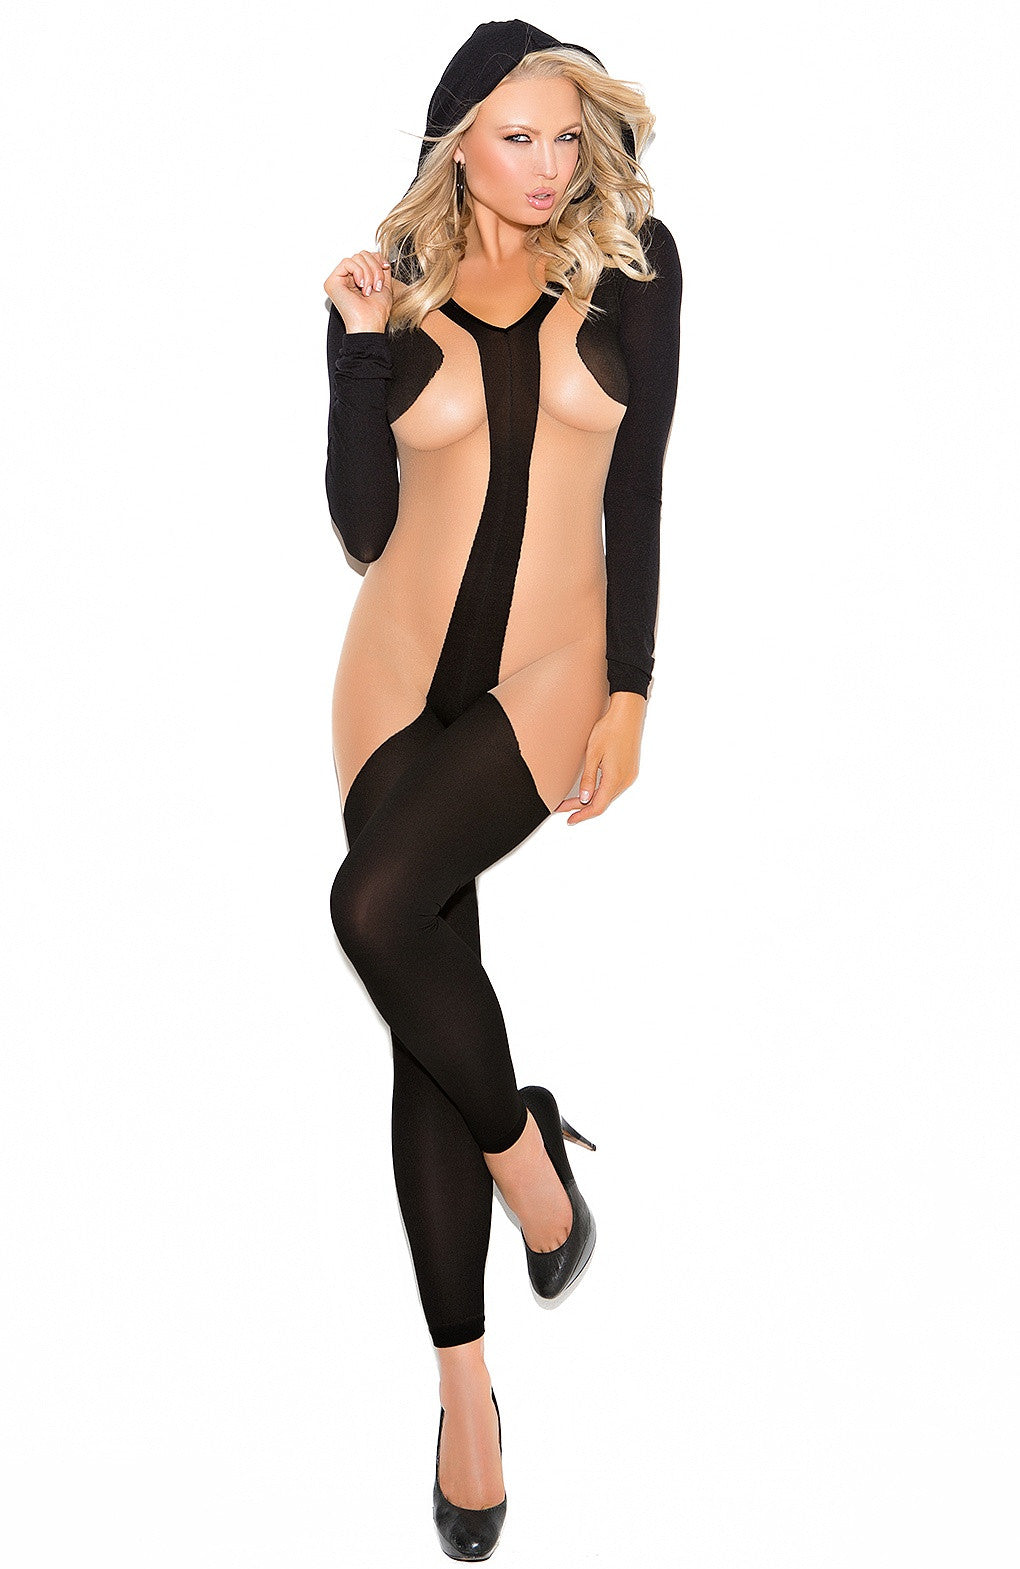 EM-1643 Hooded stylish bodystocking - Sexylingerieland